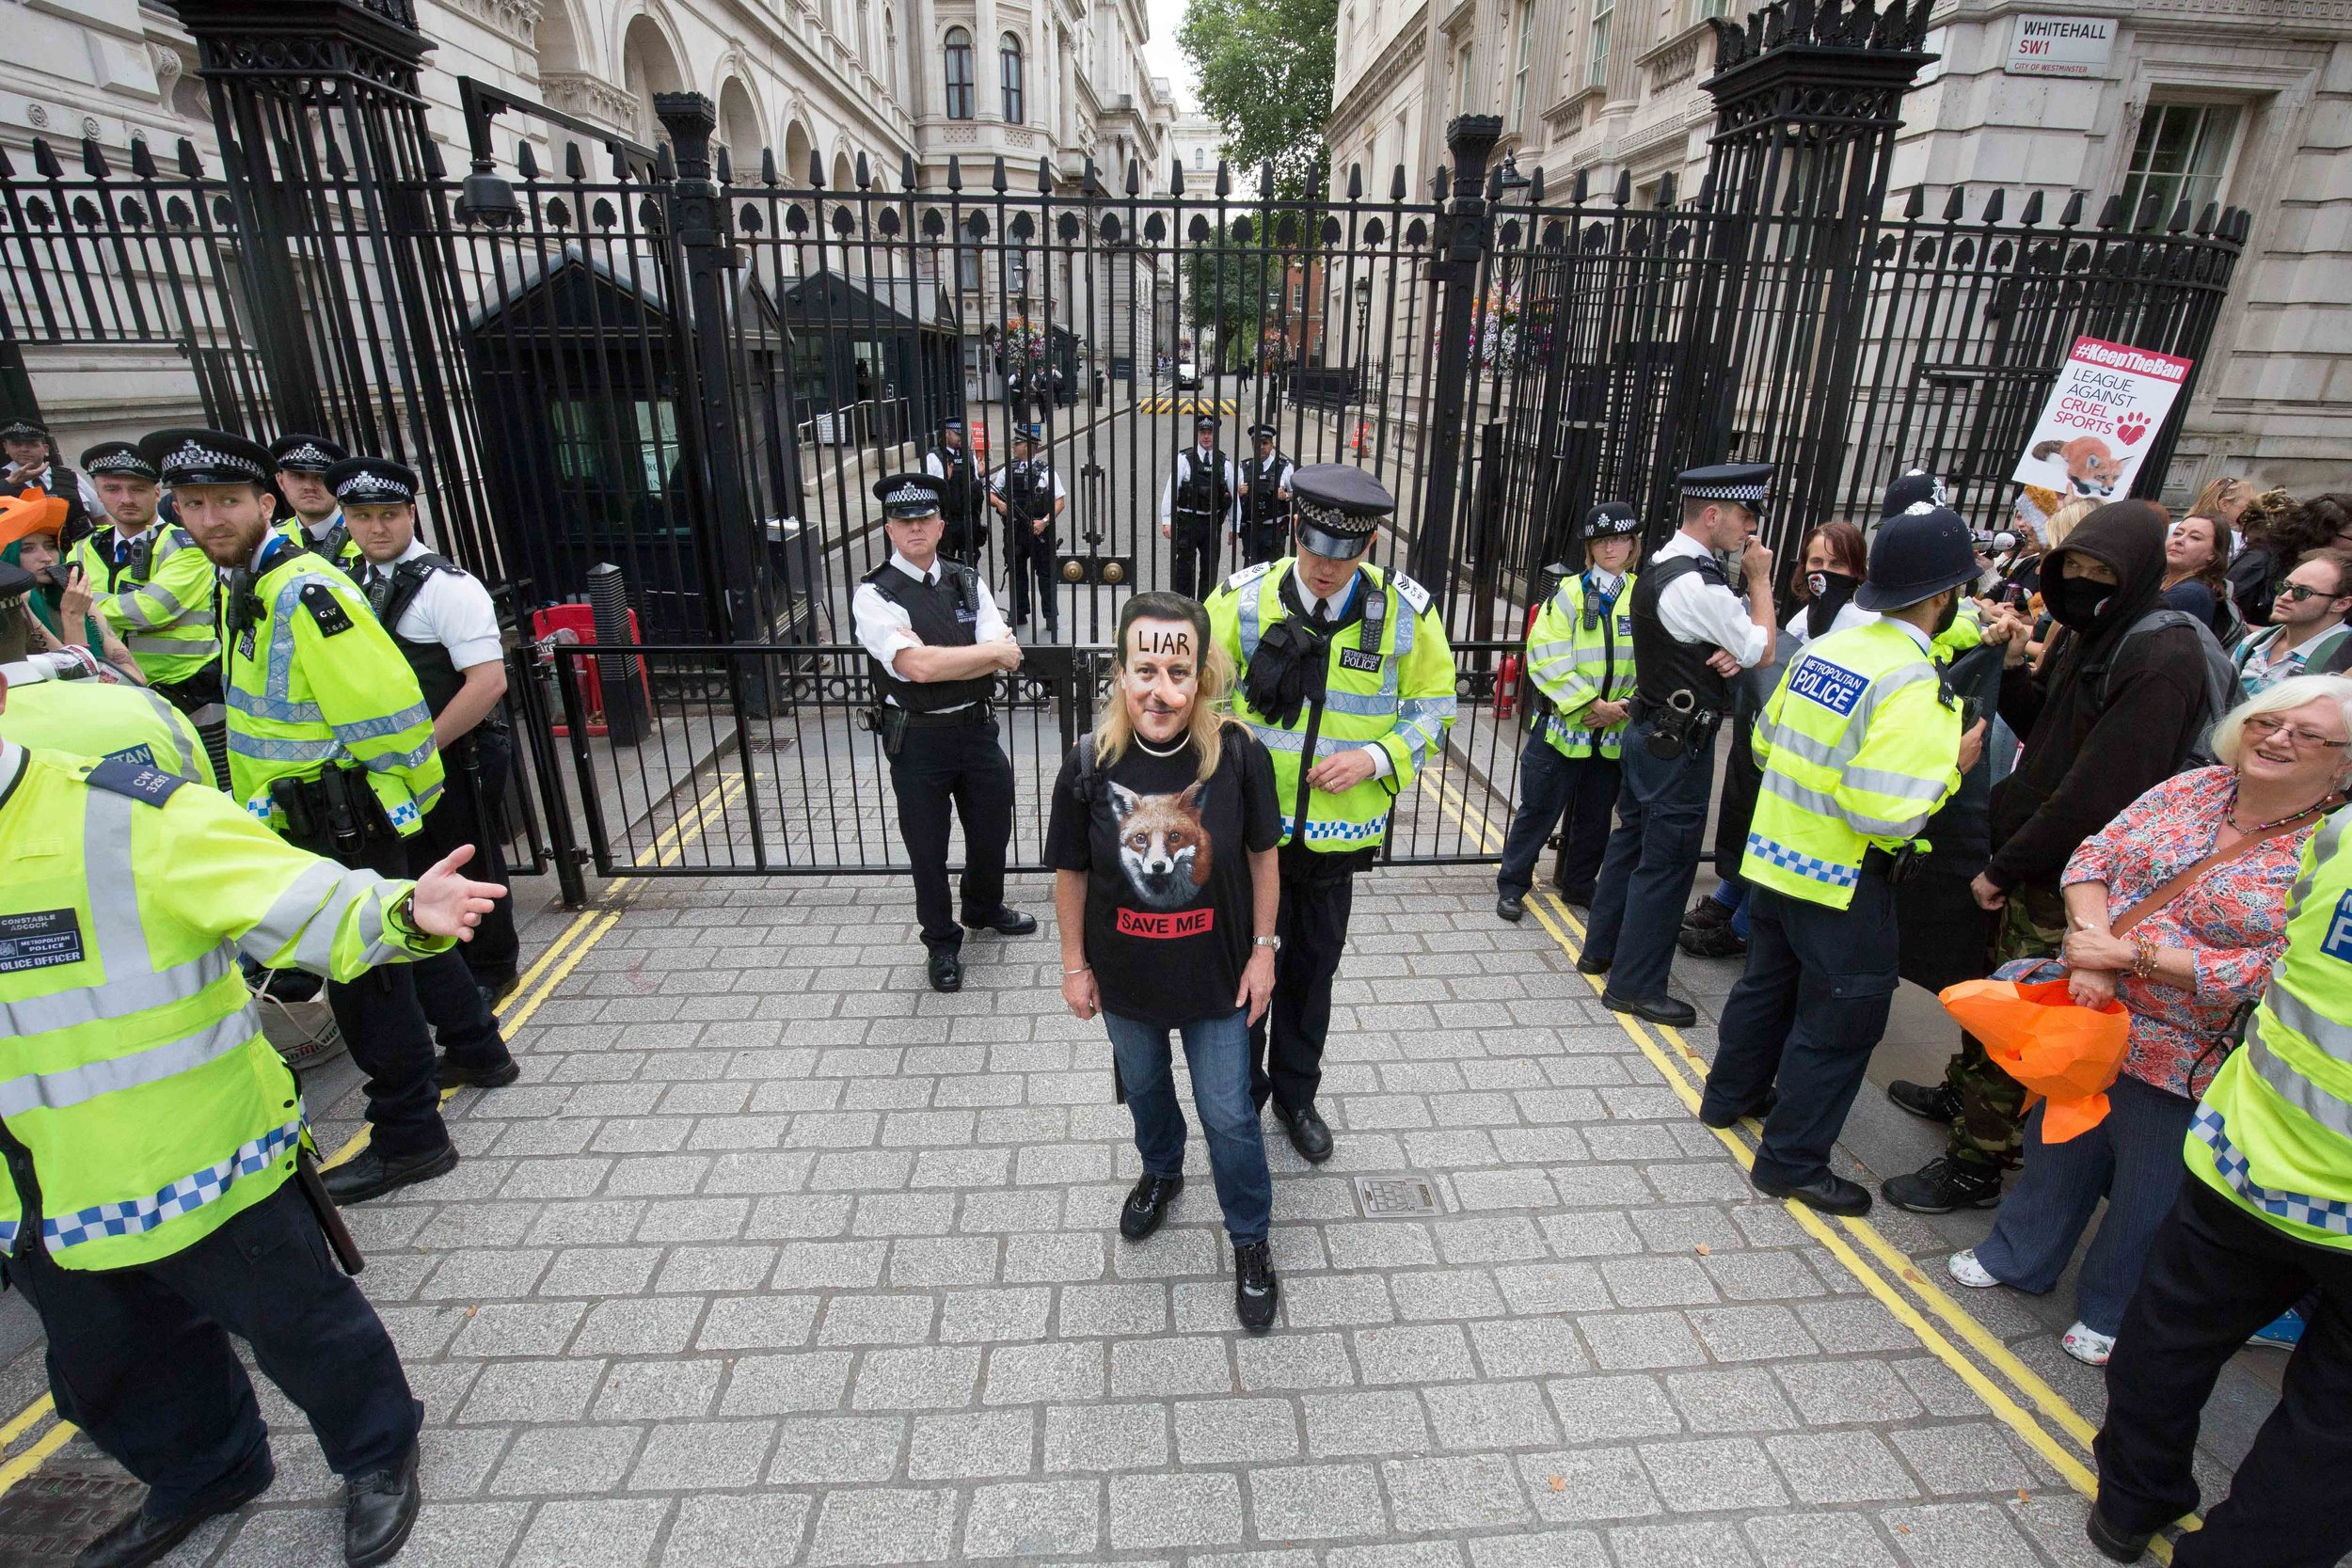 Save Me – protesters gather outside Downing Street to urge the Prime Minister to back the ban on hunting with dogs. This is part of the series awarded in the British Life Photography Awards 2015. London, England - July 15 2015.